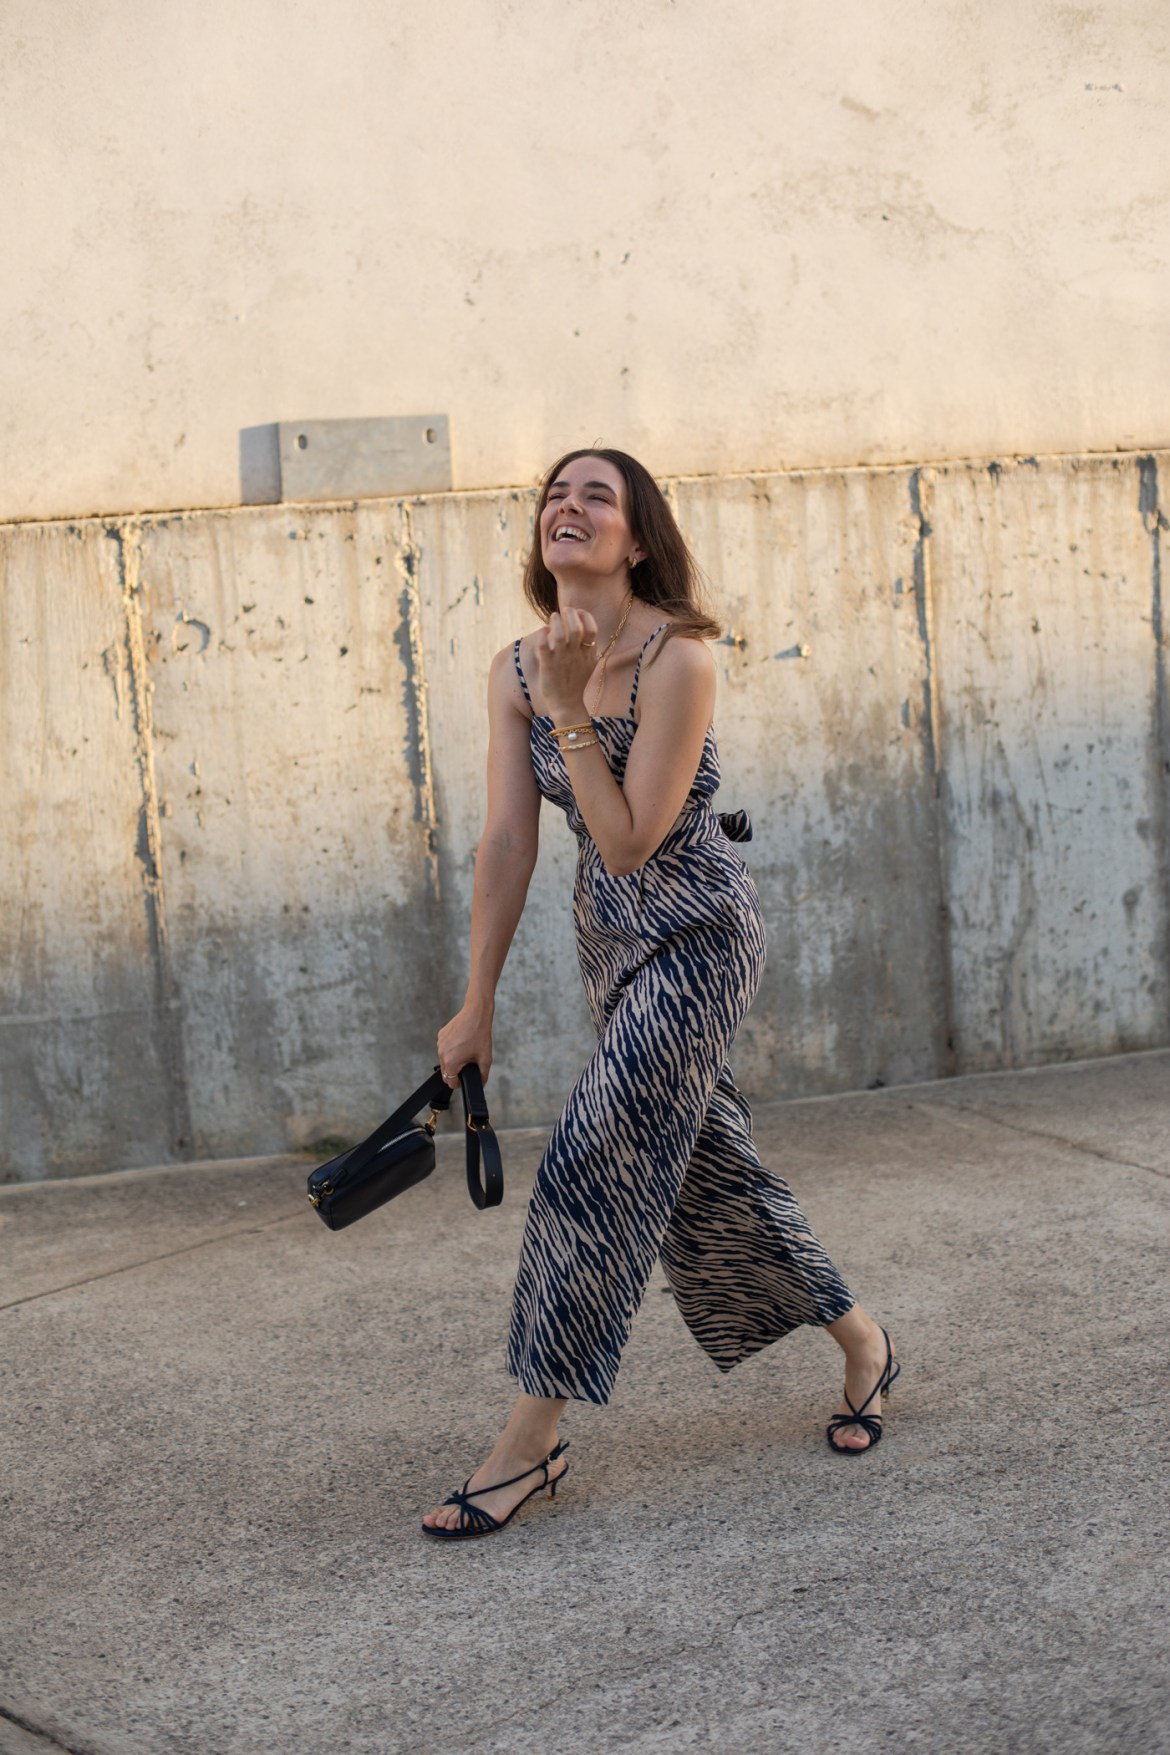 Boden garden party outfit or at-home outfit with zebra print